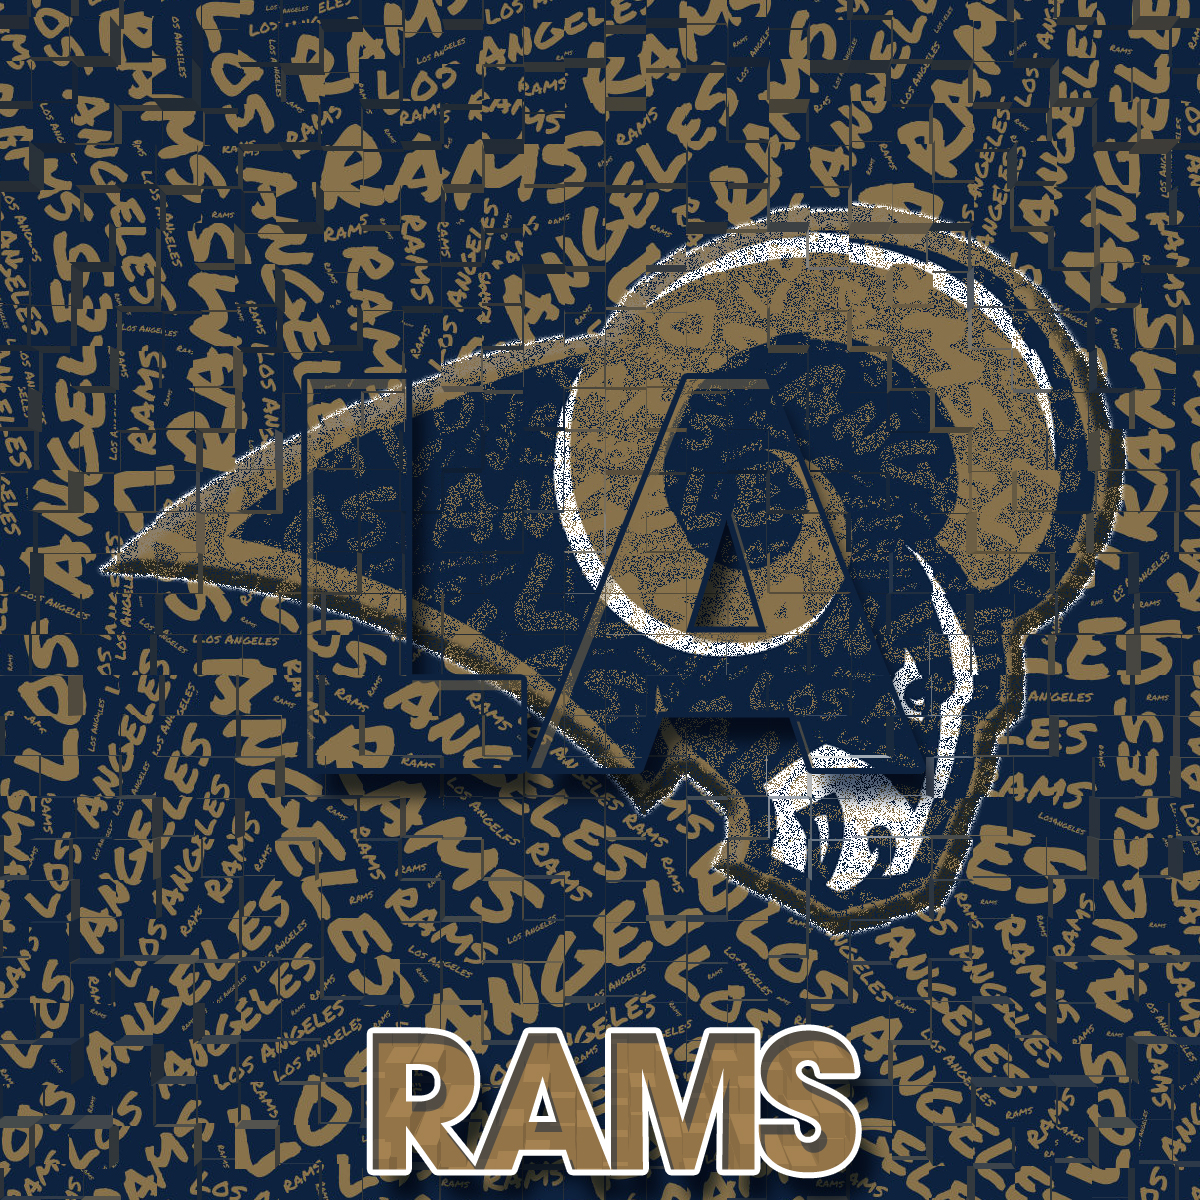 San Diego Chargers Fan Forum: Los Angeles Rams By Whostherawest On DeviantArt